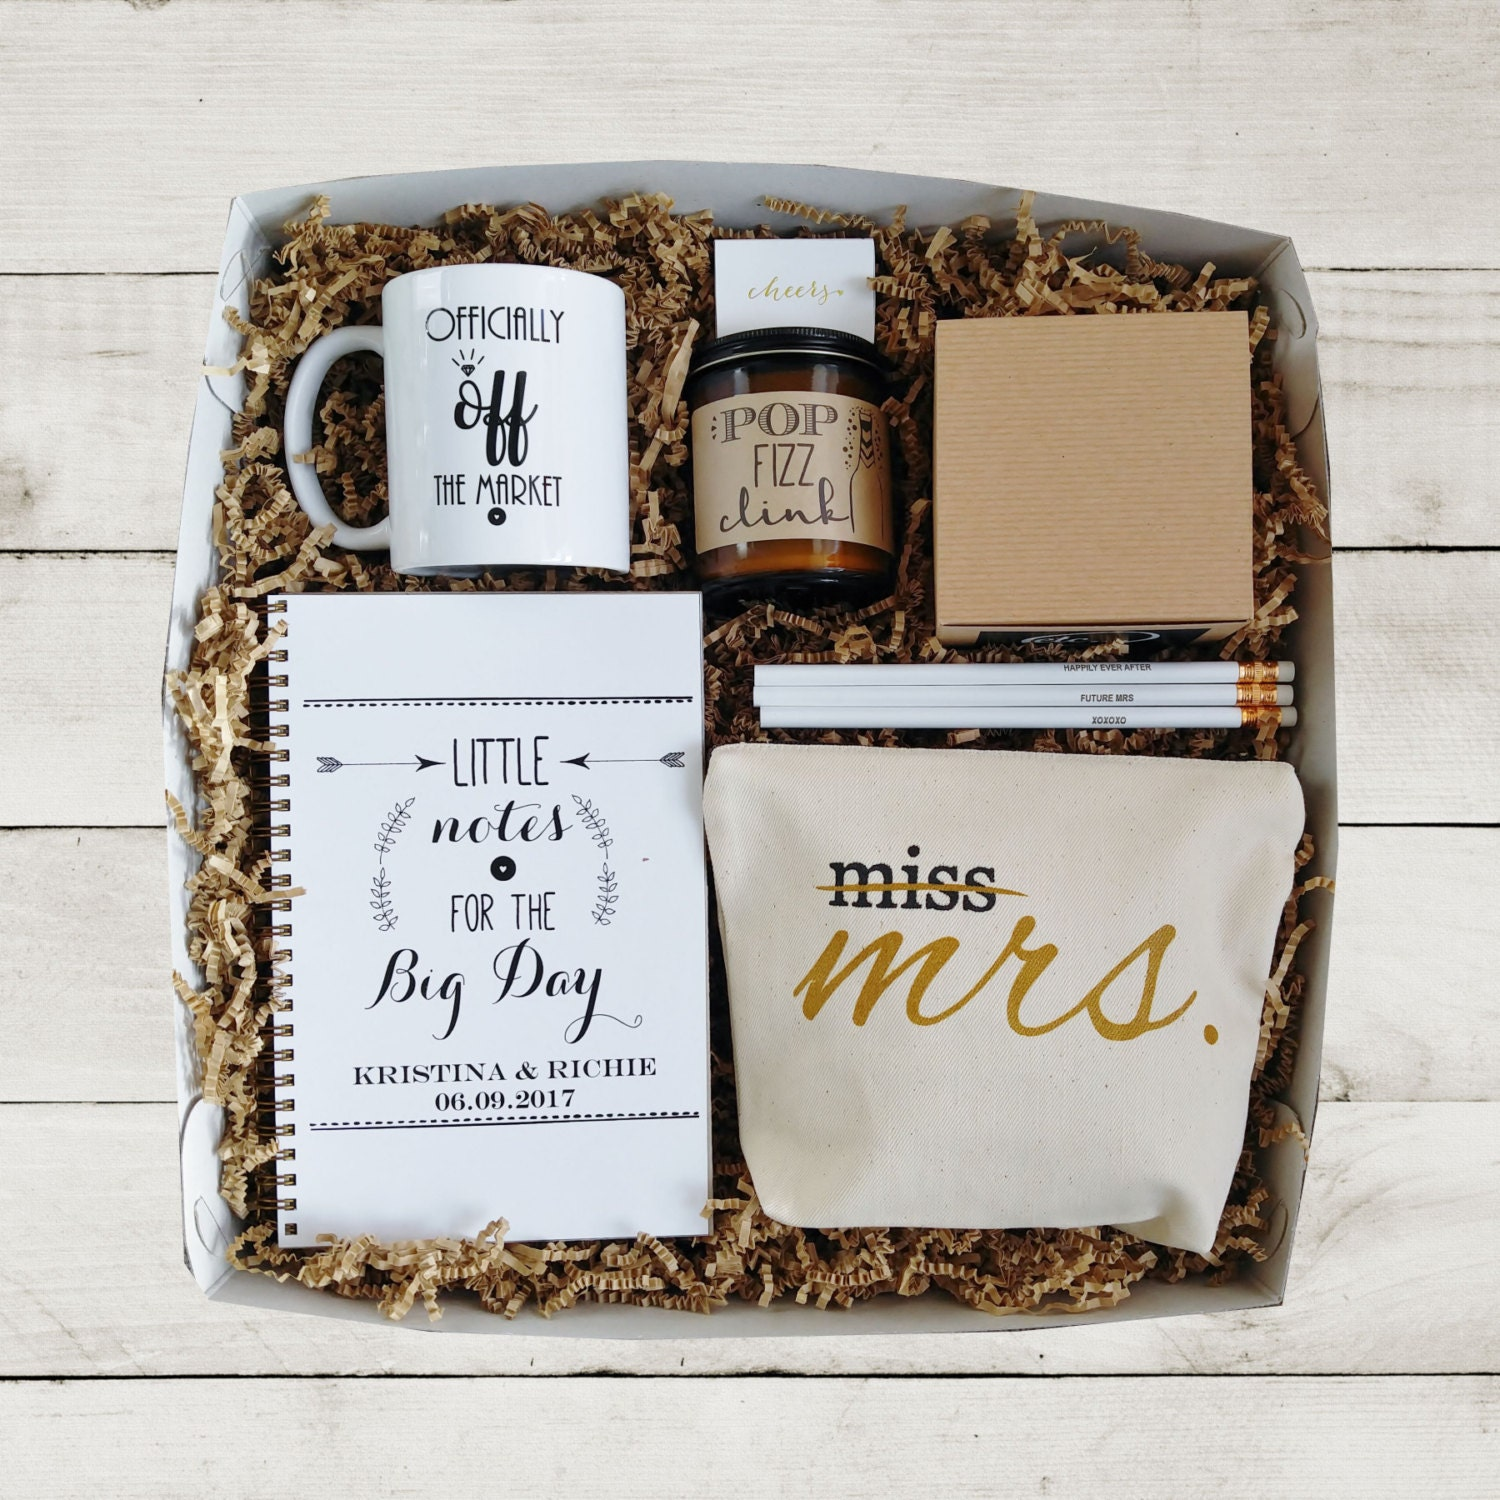 Wedding Gift Ideas For The Bride: Future Mrs Gift Box Bride To Be Gift Newly Engaged Gift For